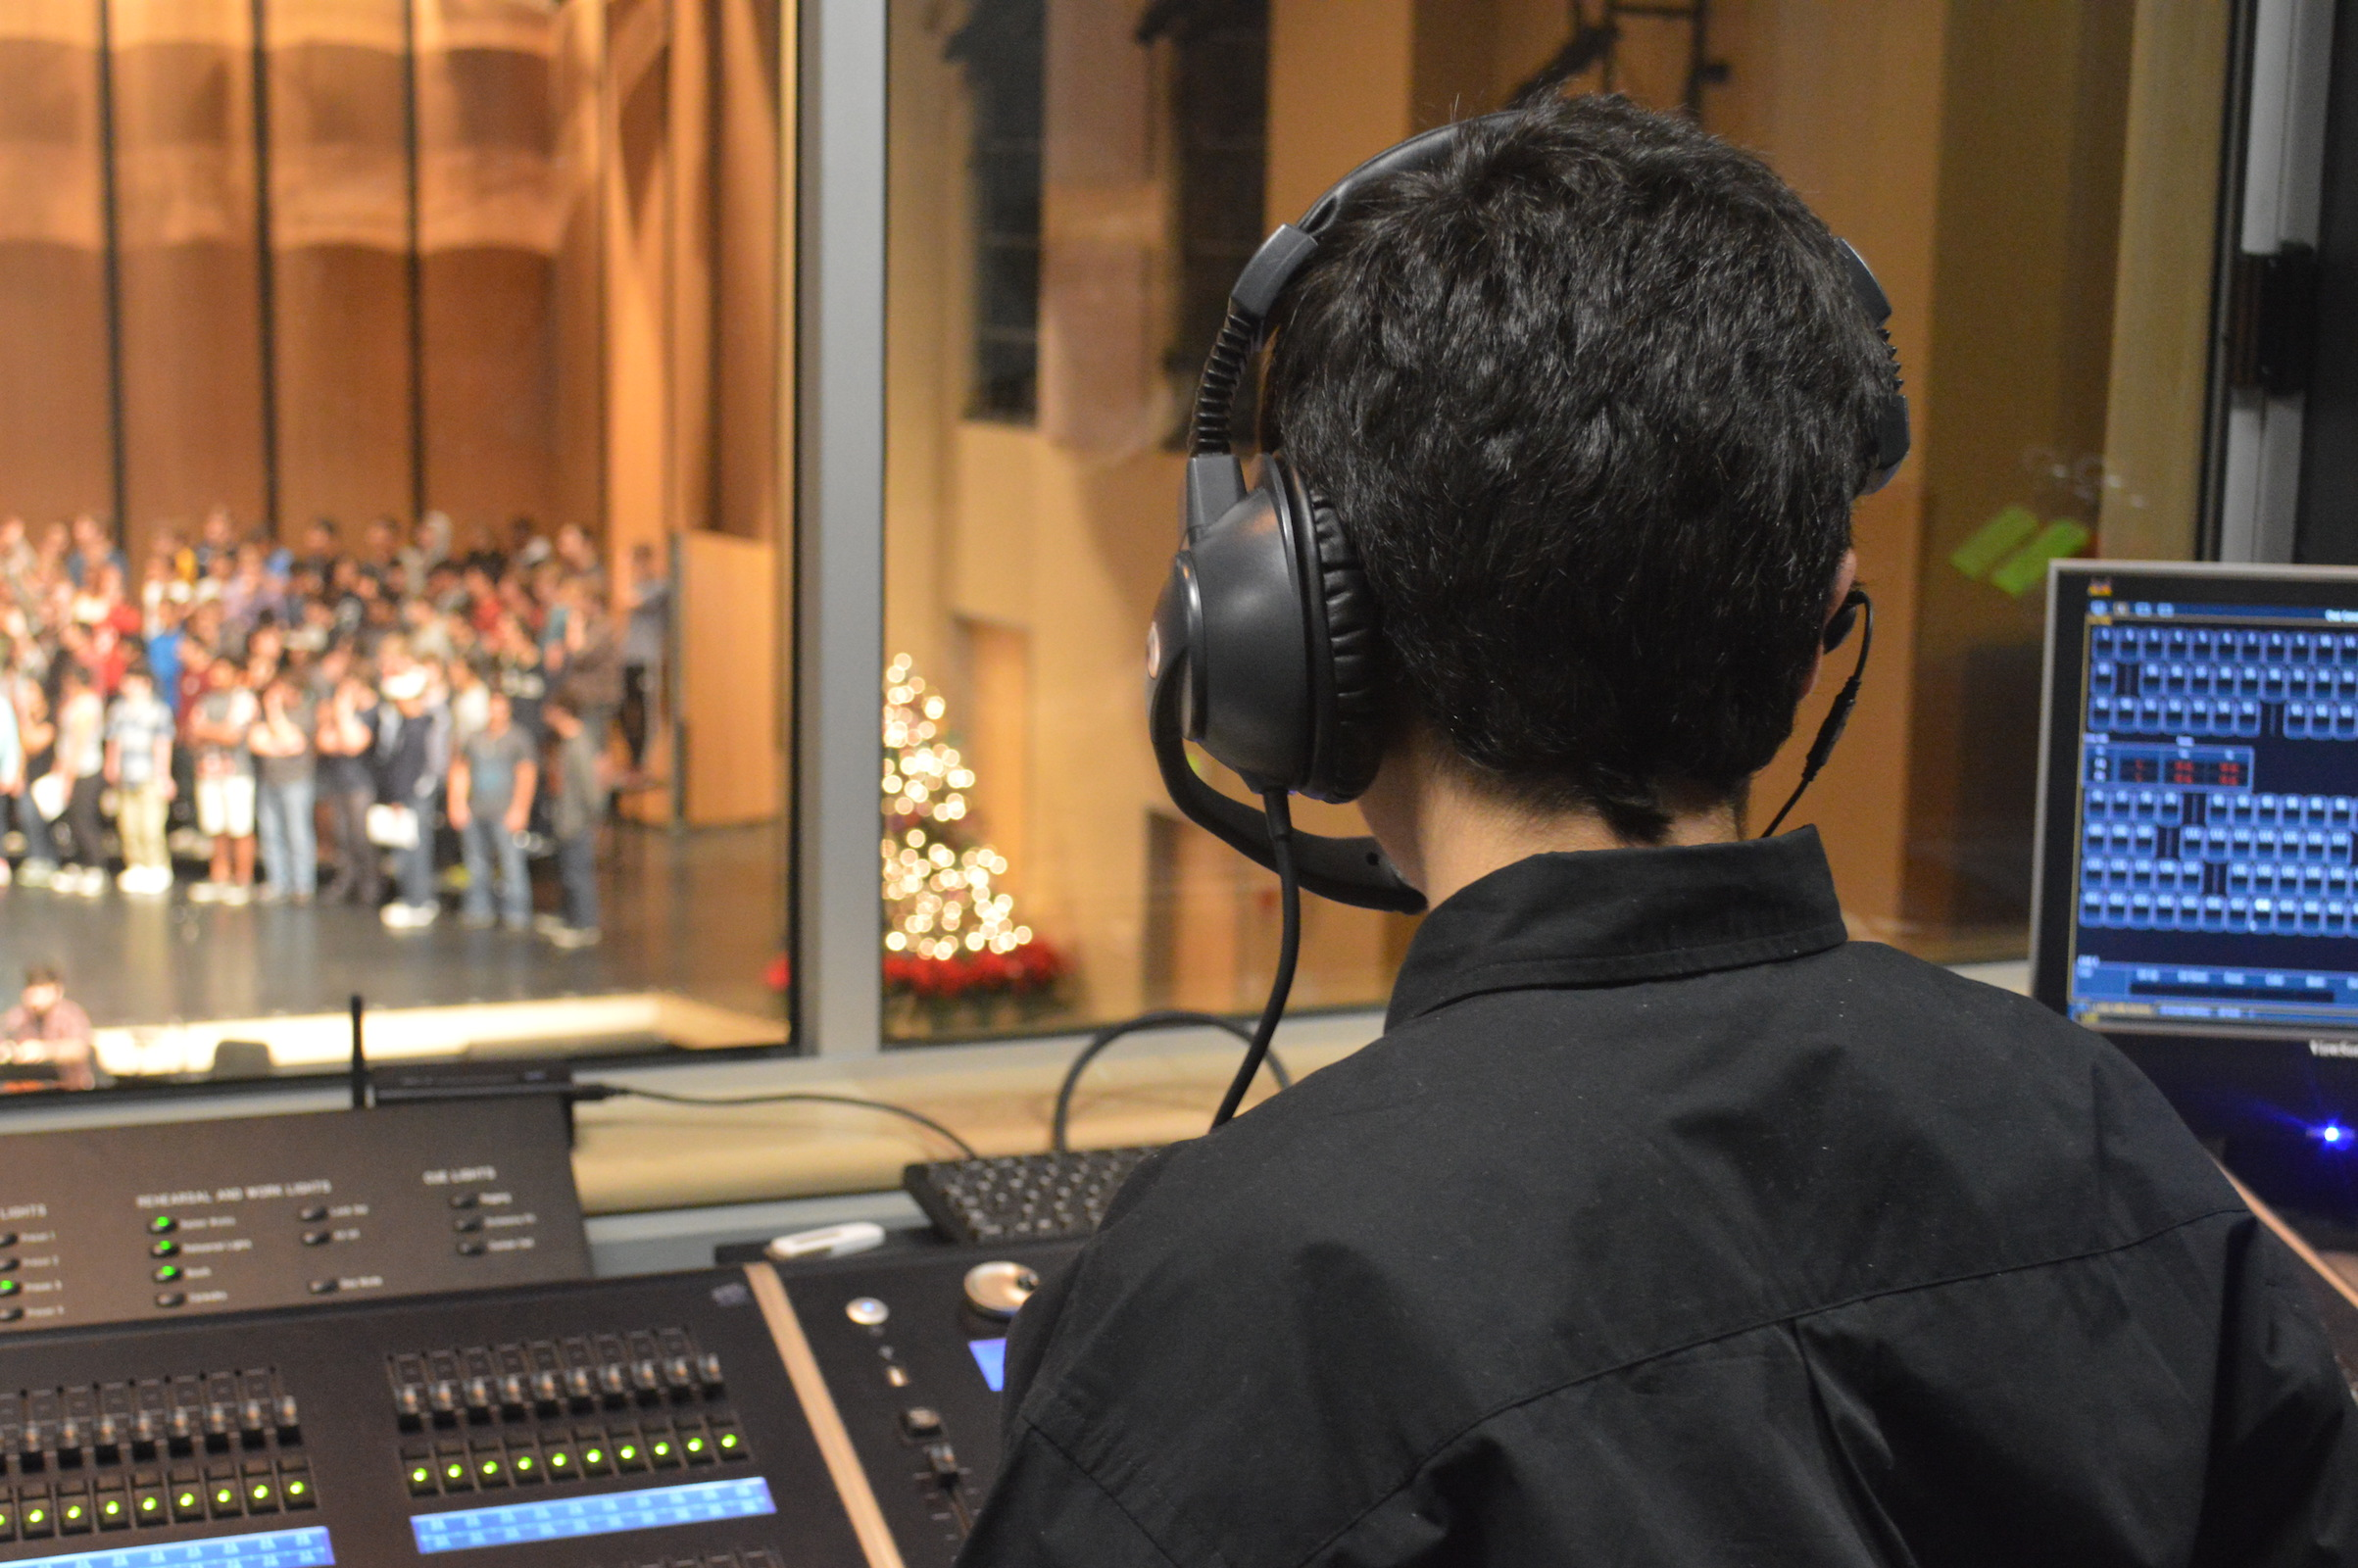 Freshman Andres Raddavero runs the light board during rehearsal for Carlmont's winter choir show. During this rehearsal, Raddavero learns his cues for the upcoming performances.